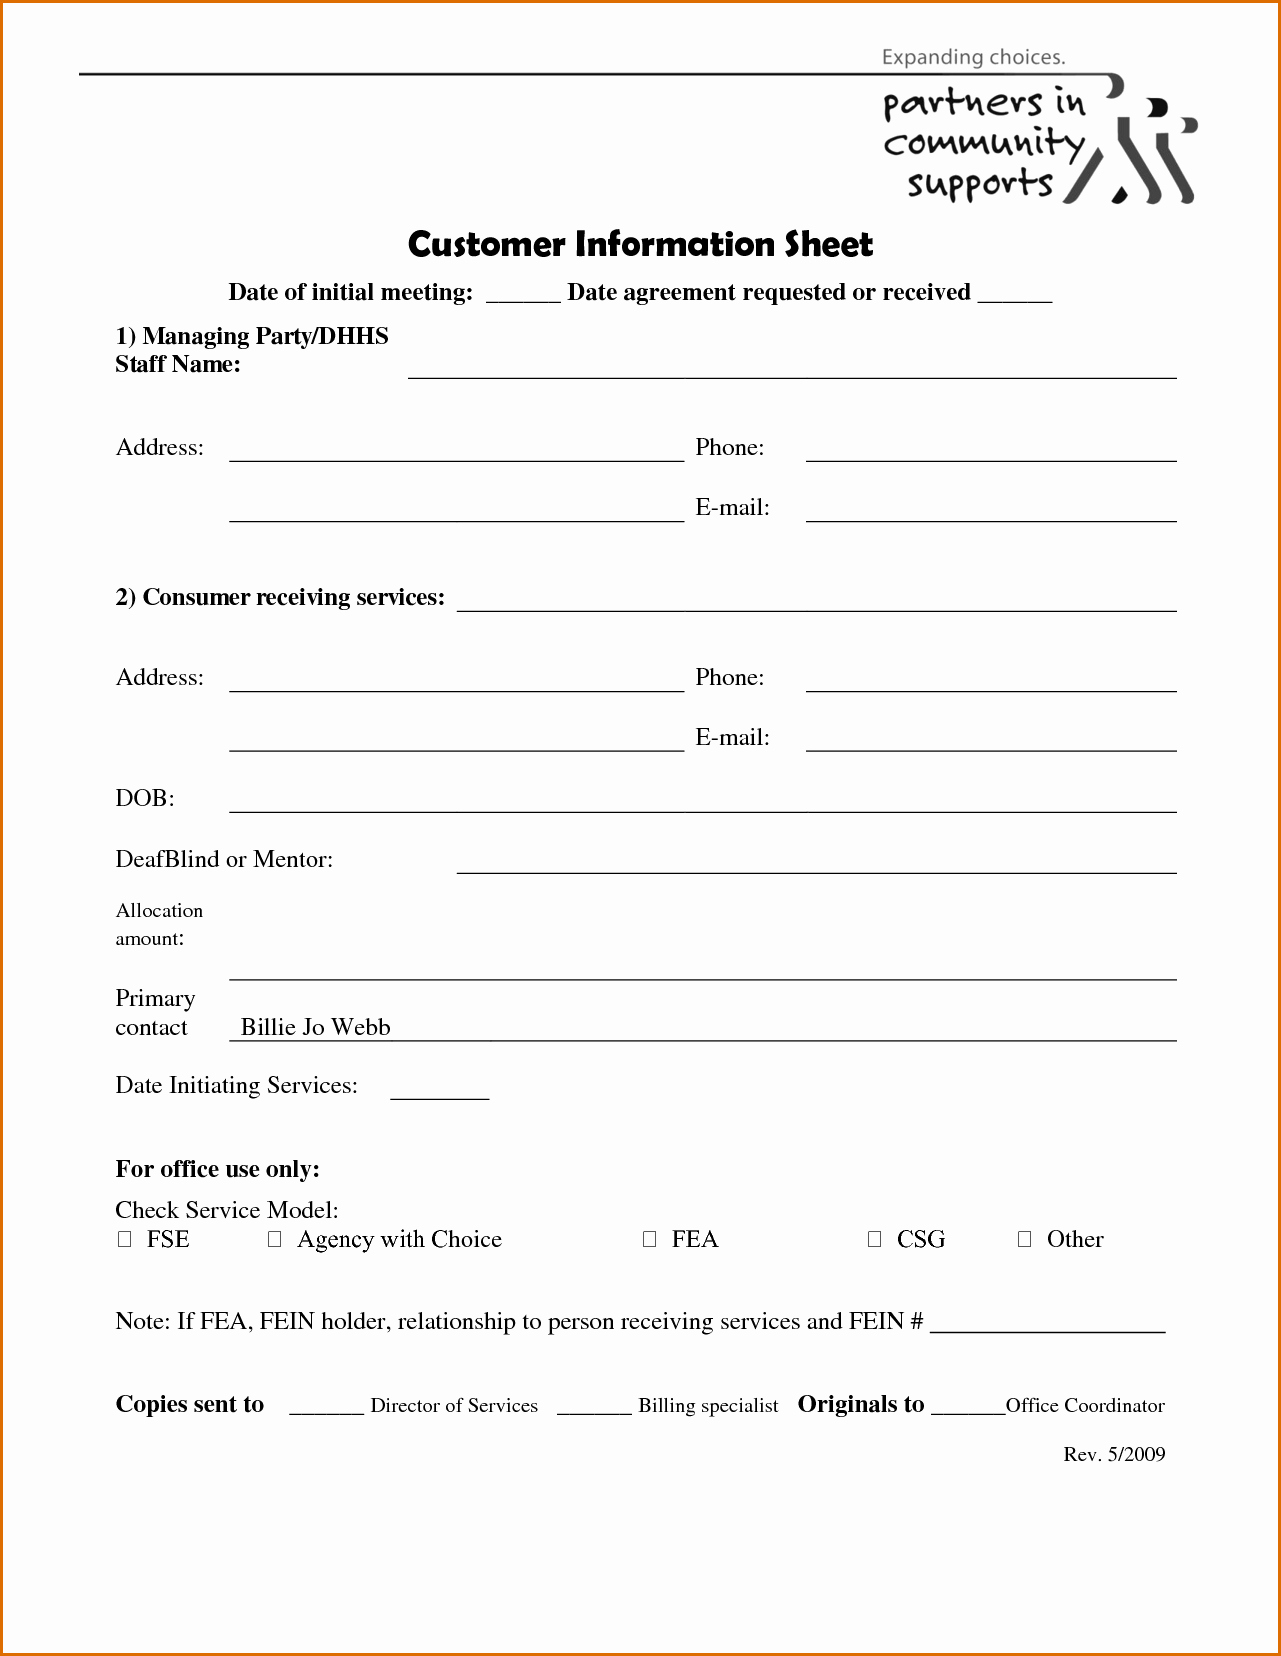 Customer Information Sheet Template Best Of 5 Client Information Sheet